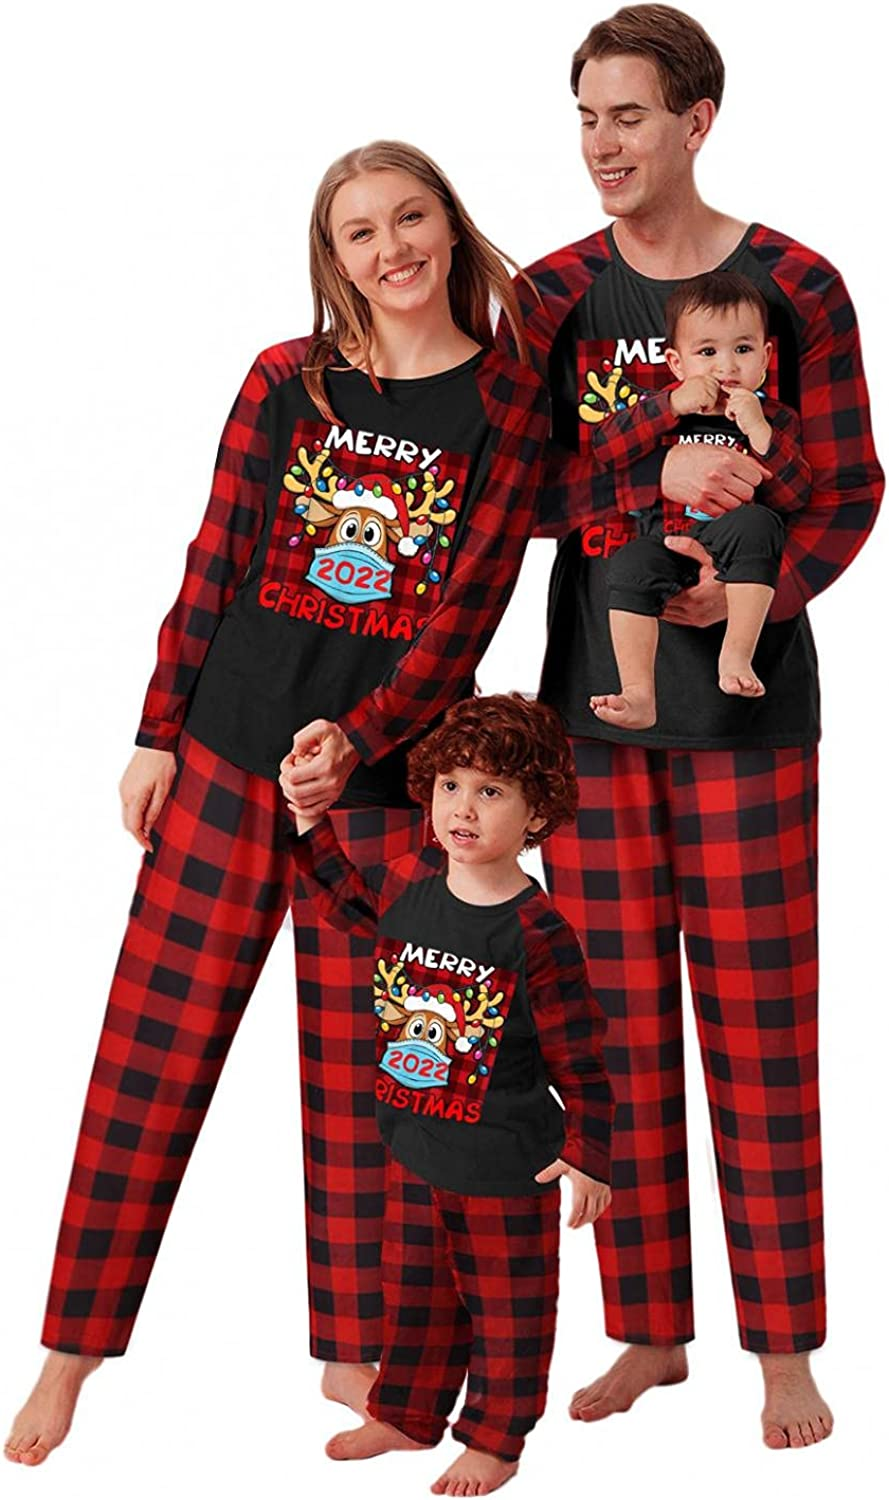 Matching Family Pajamas Sets Christmas 70% OFF Outlet with PJ's Long Sleev Max 63% OFF Deer